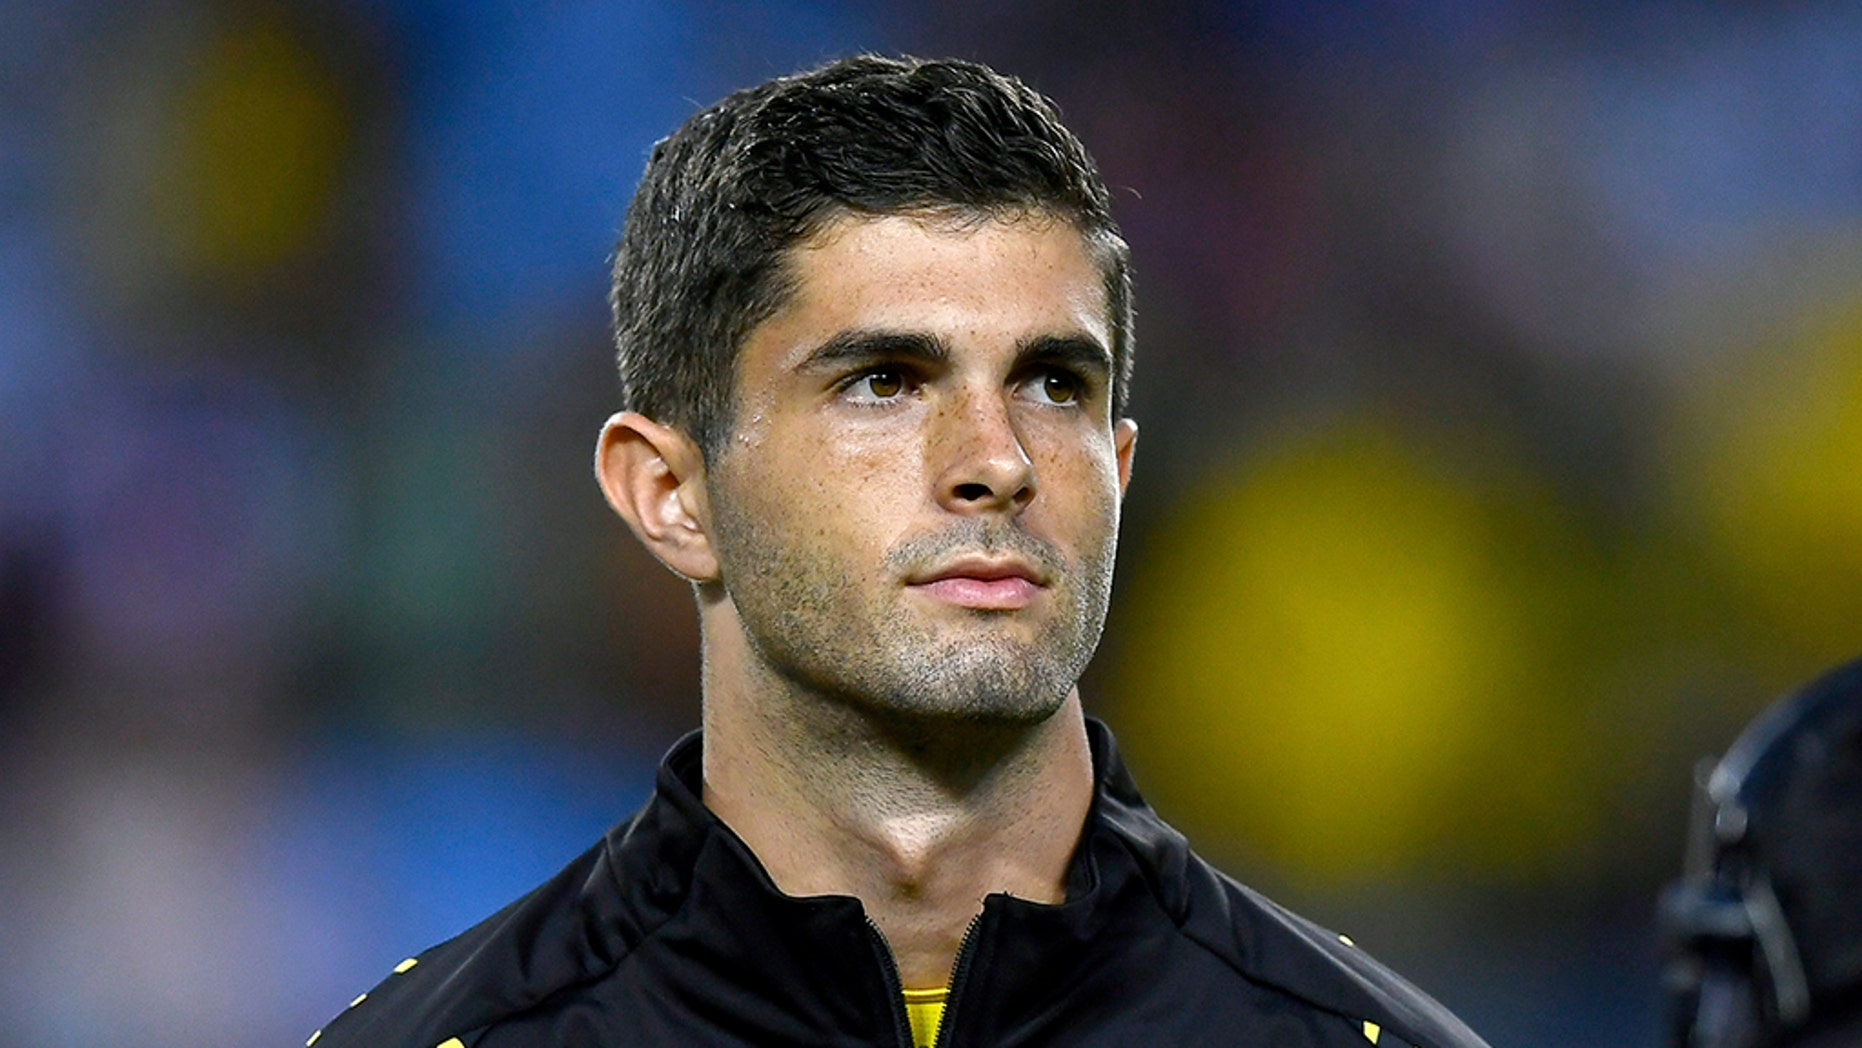 Christian Pulisic scored two goals and helped set up a third in Borussia Dortmund's 3-1 win over Liverpool.